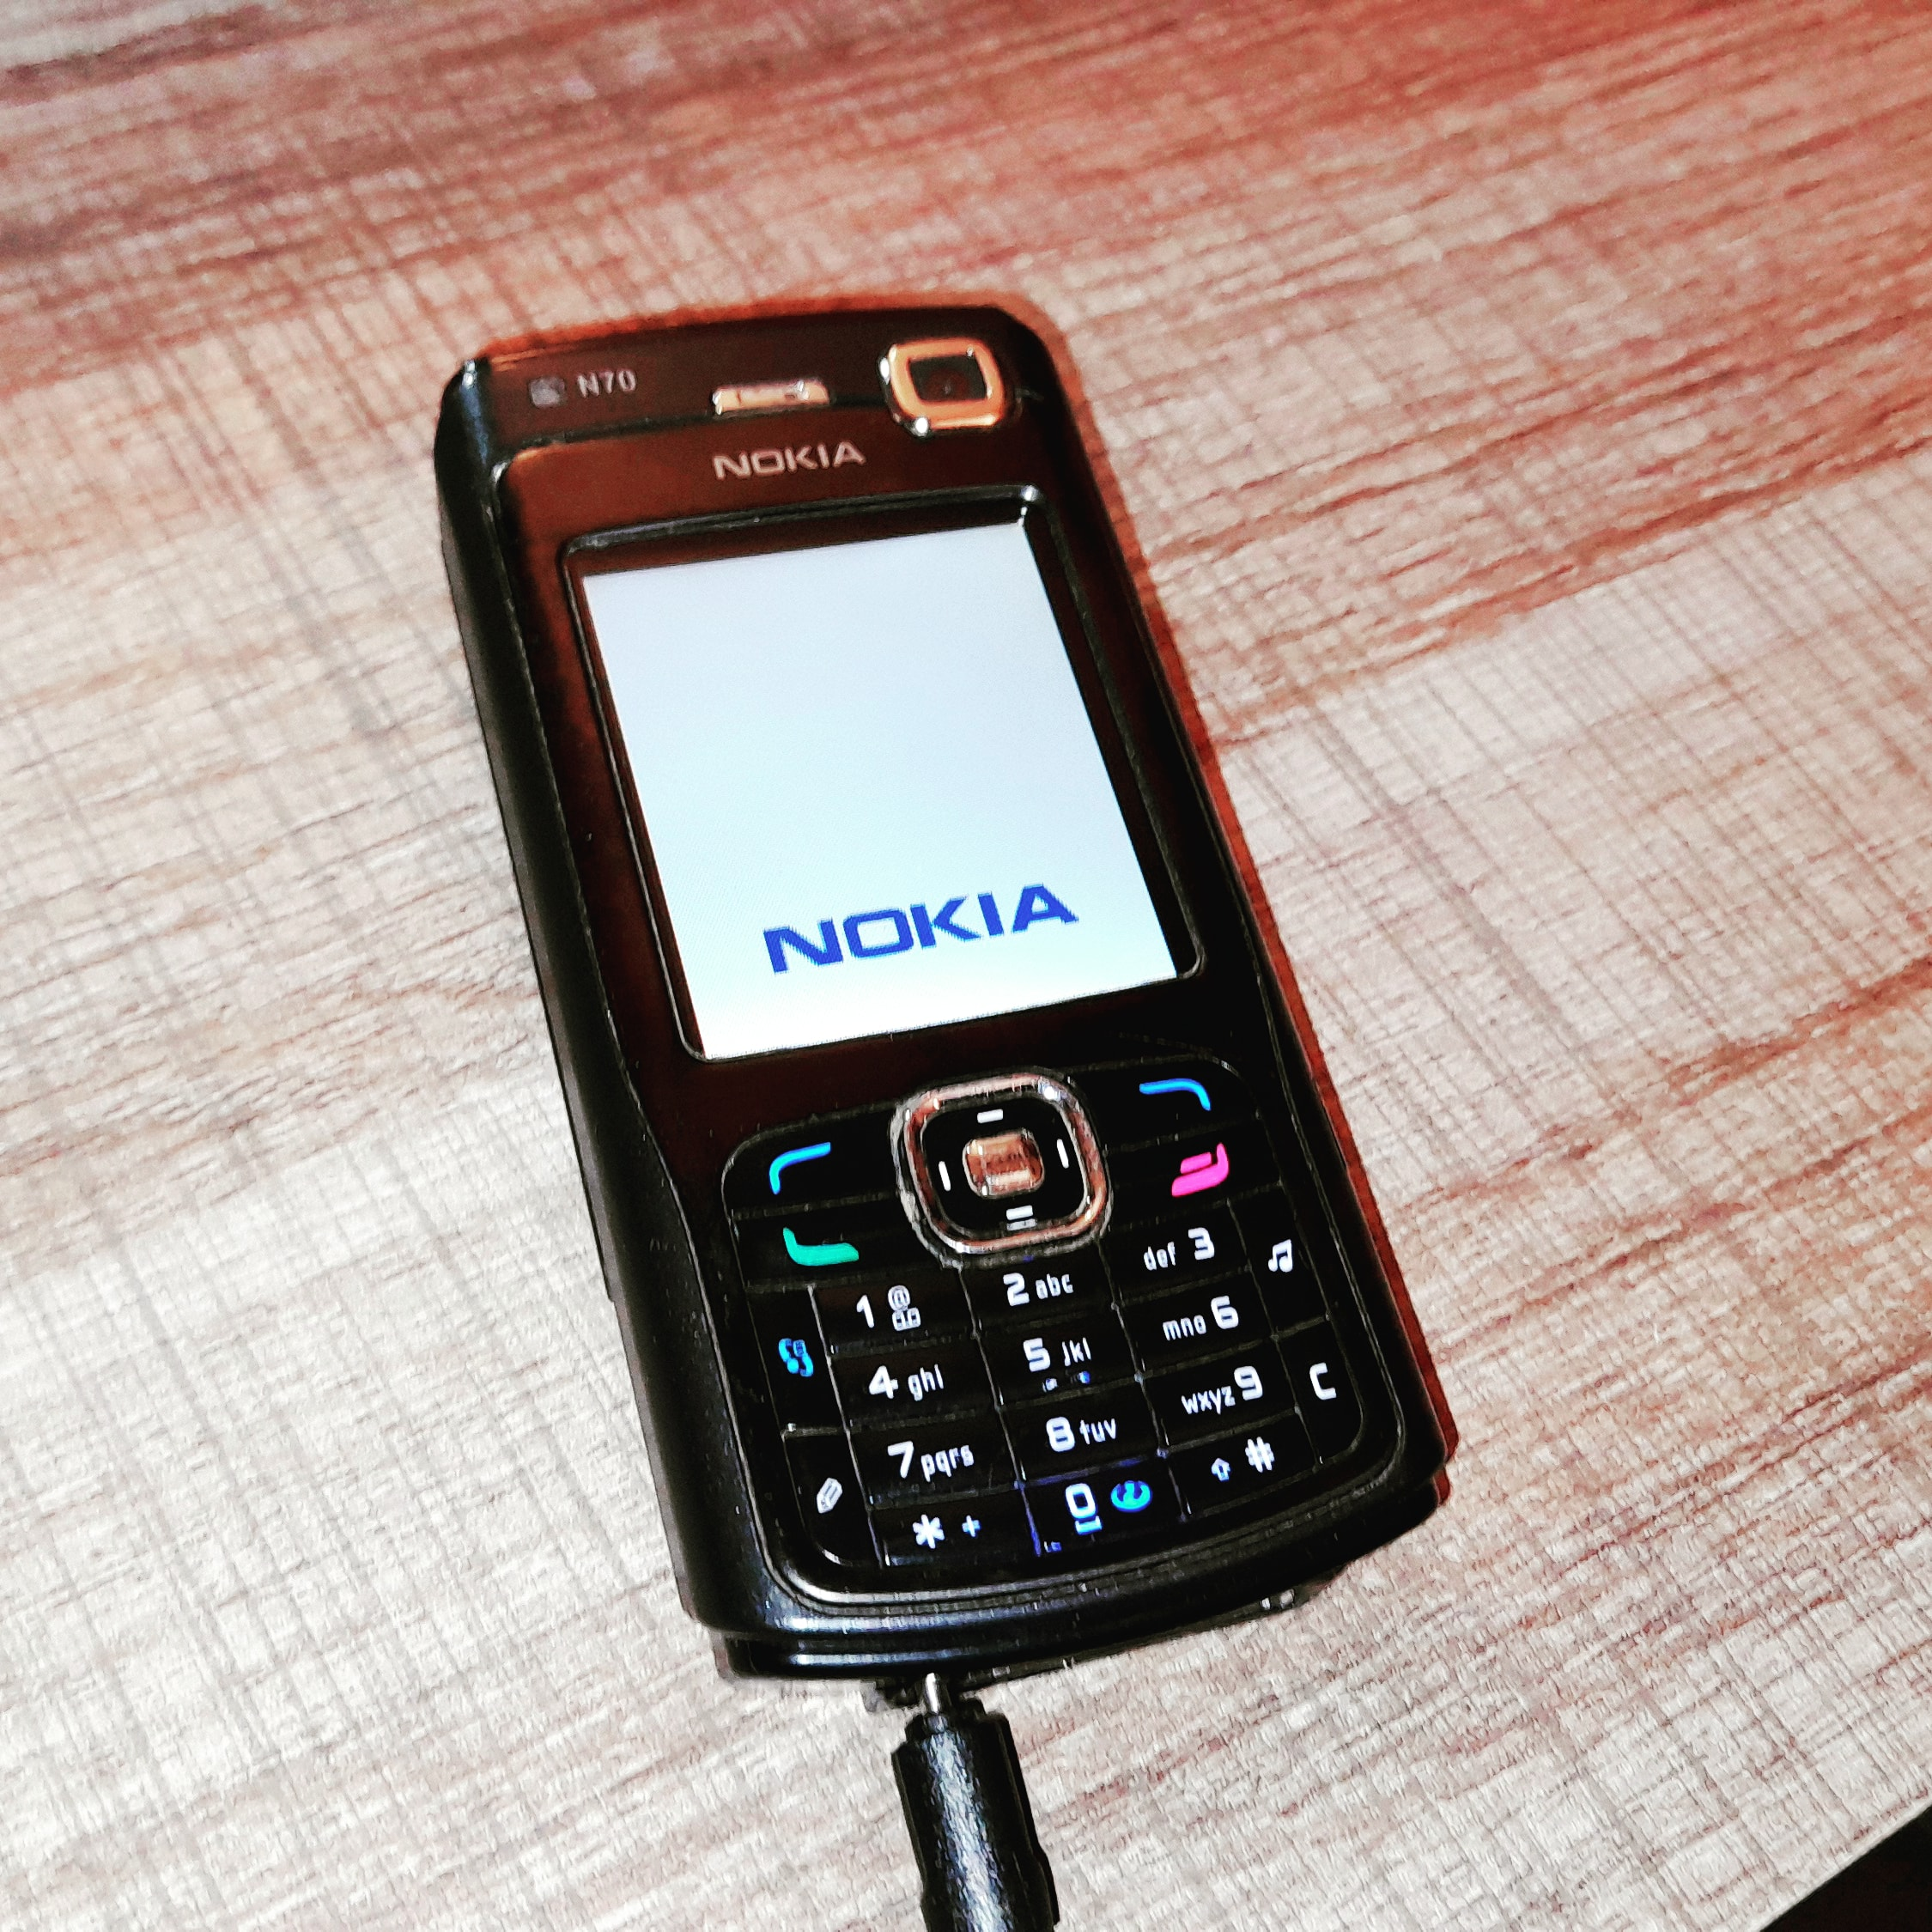 Nokia N70 For Sale